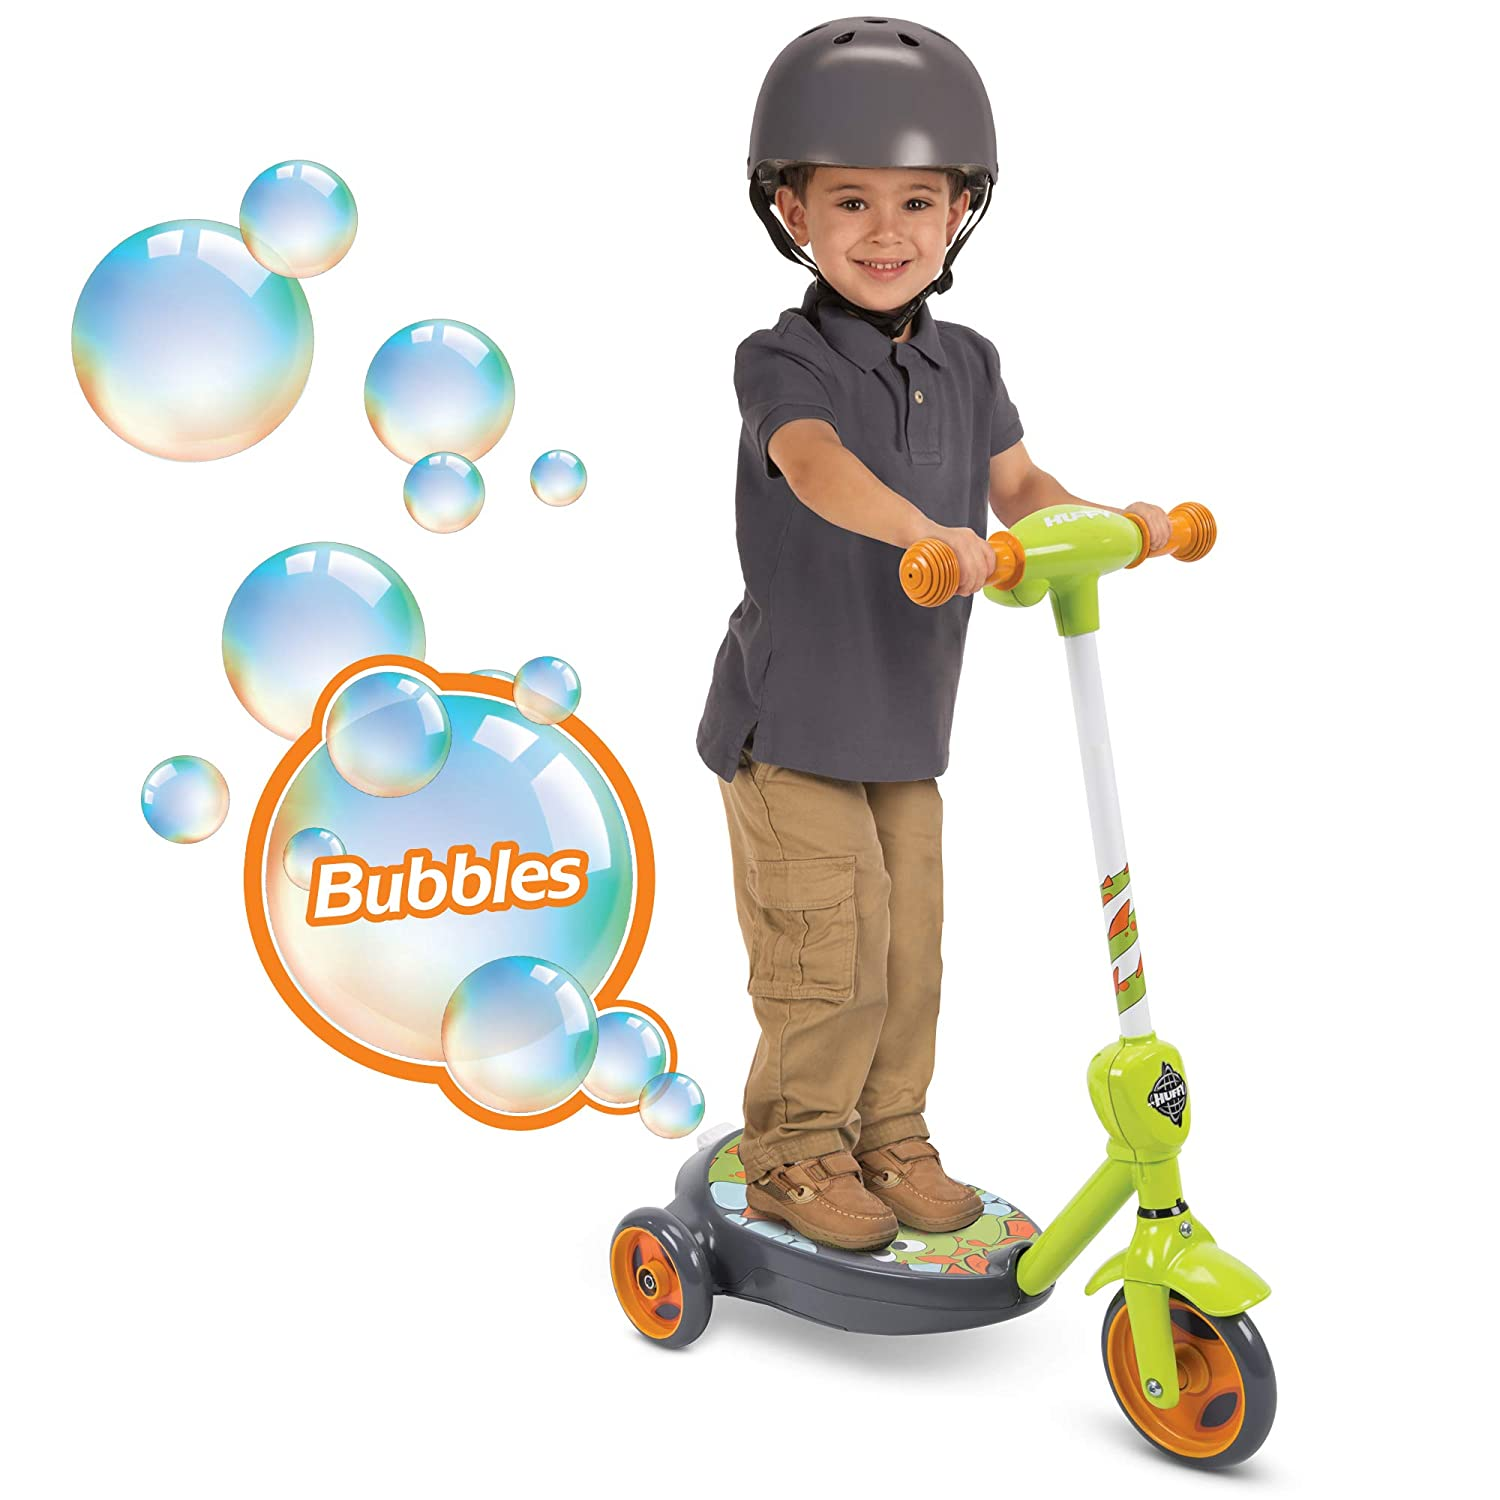 Huffy 18007P 6V 2 in 1 Bubble Scooter (Dragons) Toy, Green